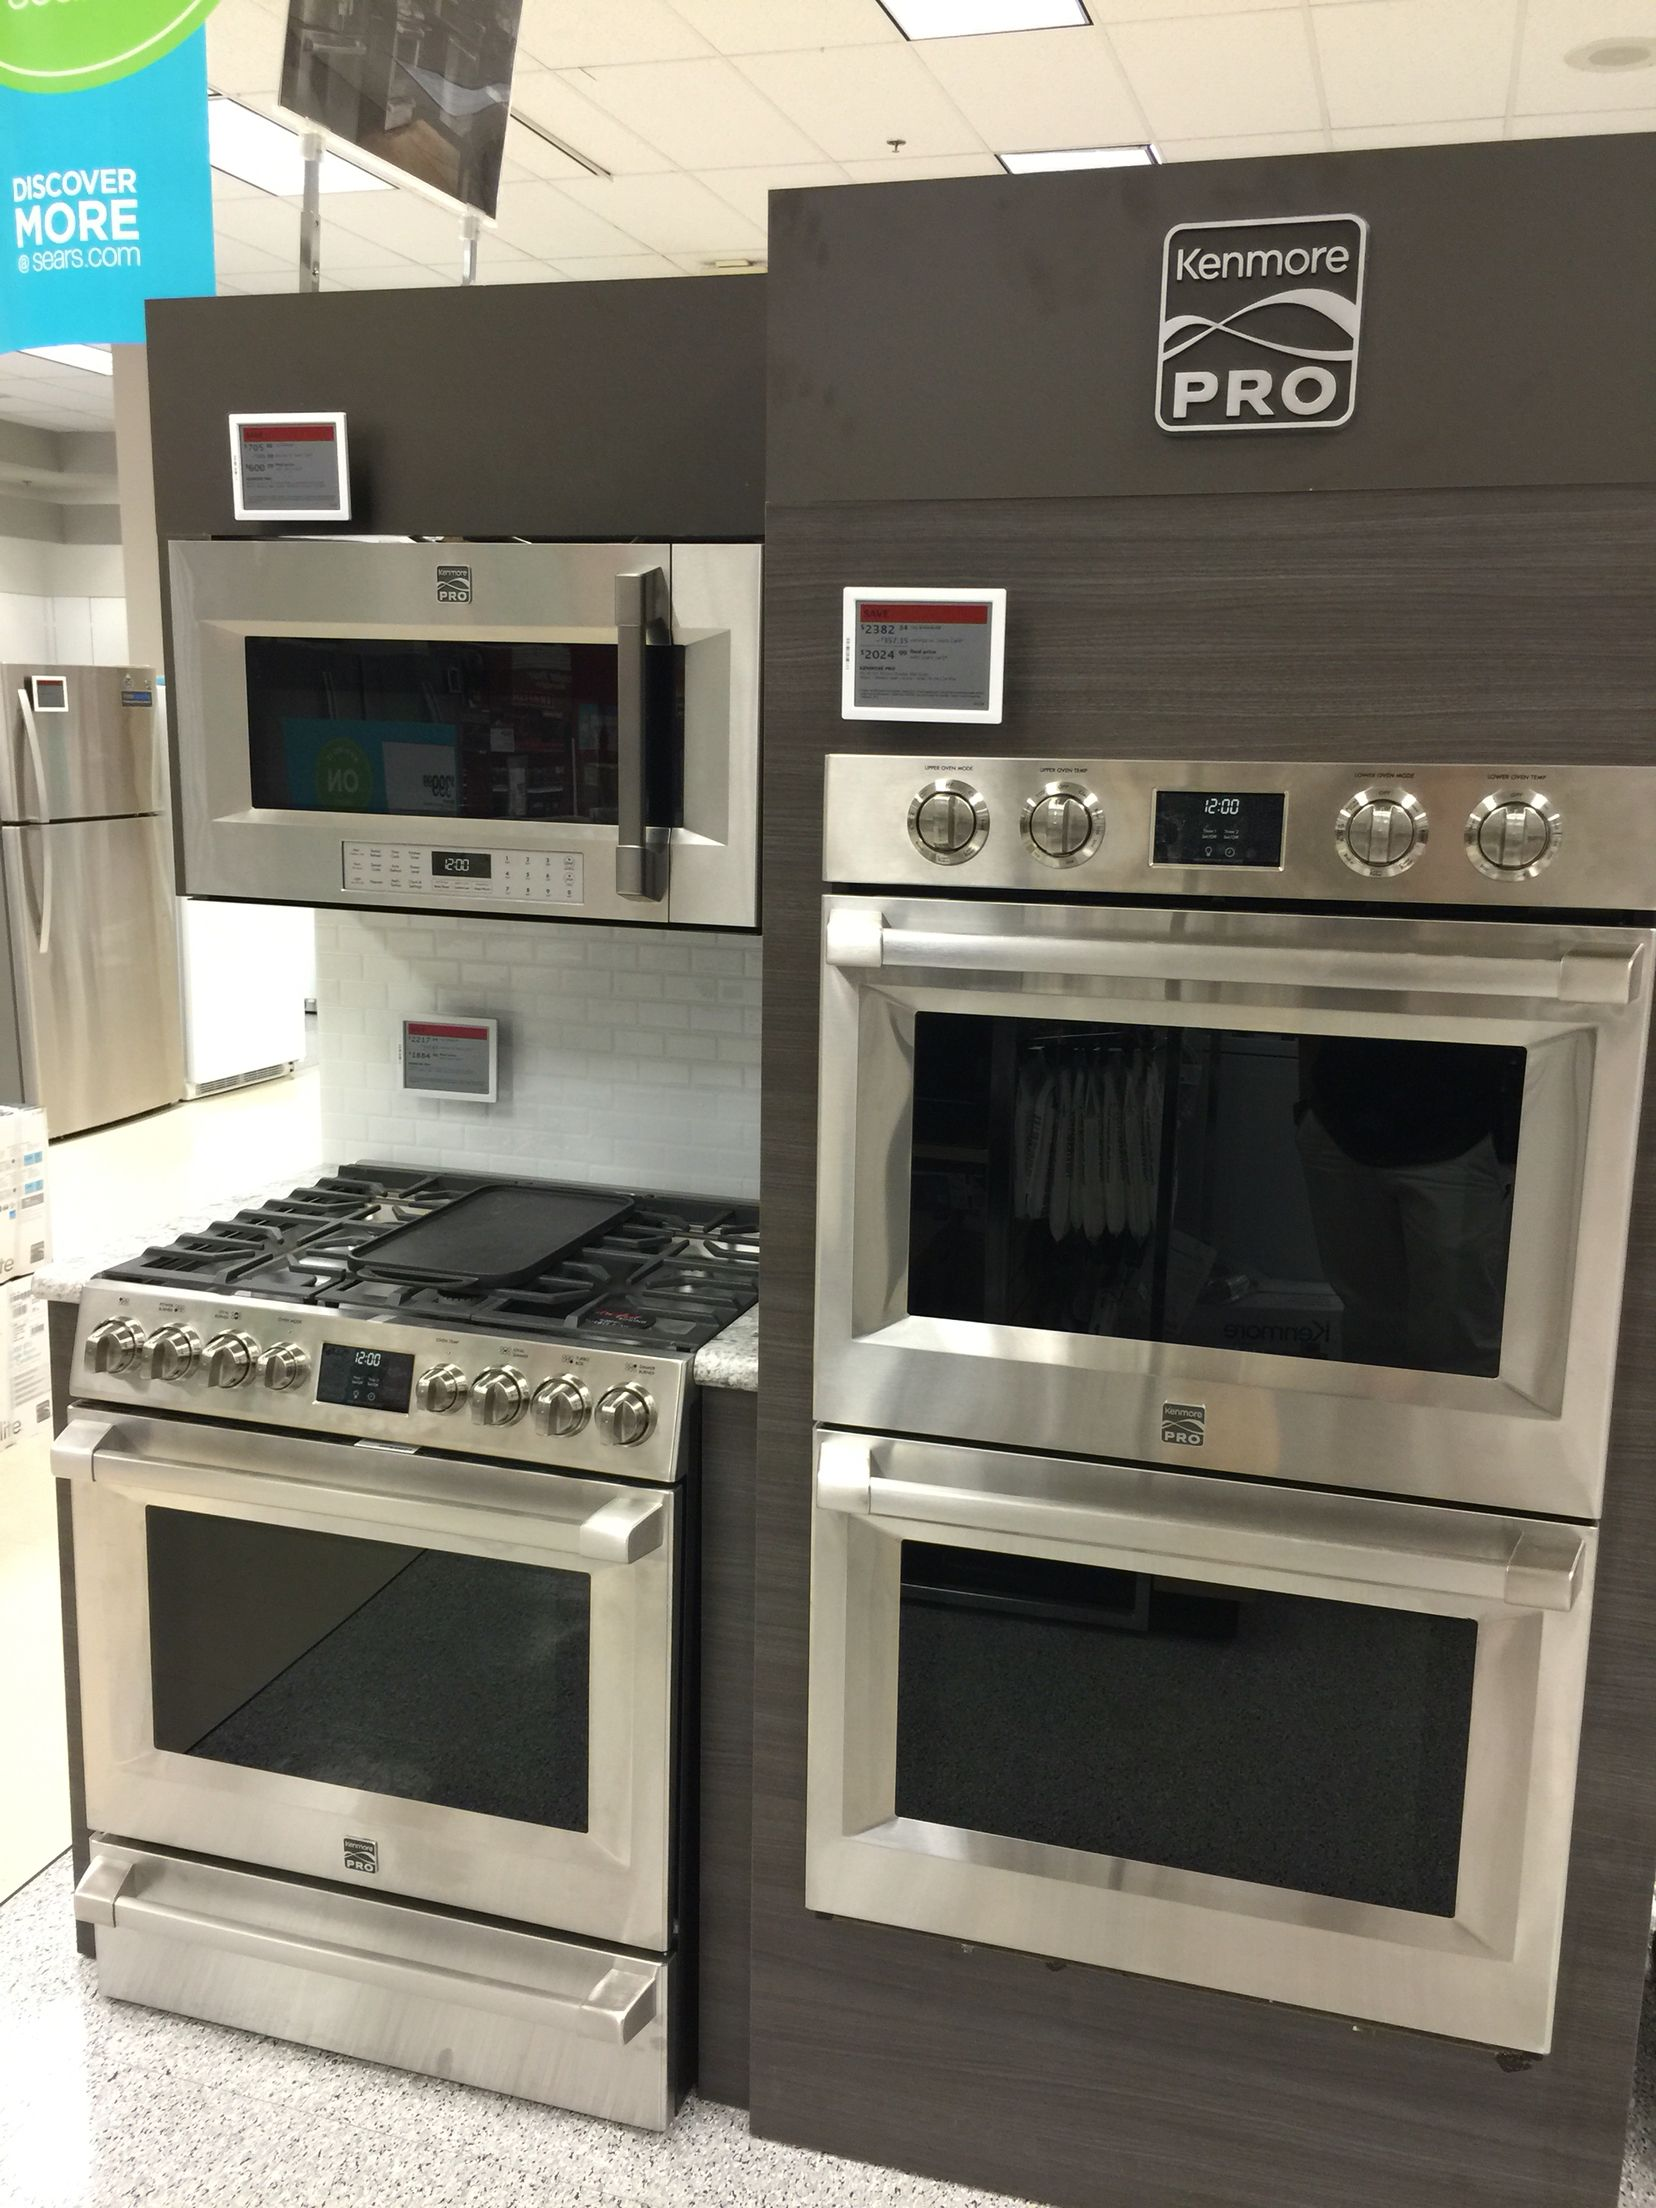 Kenmore Pro Only @Sears | Appliances @ Sears | Pinterest | Kitchens